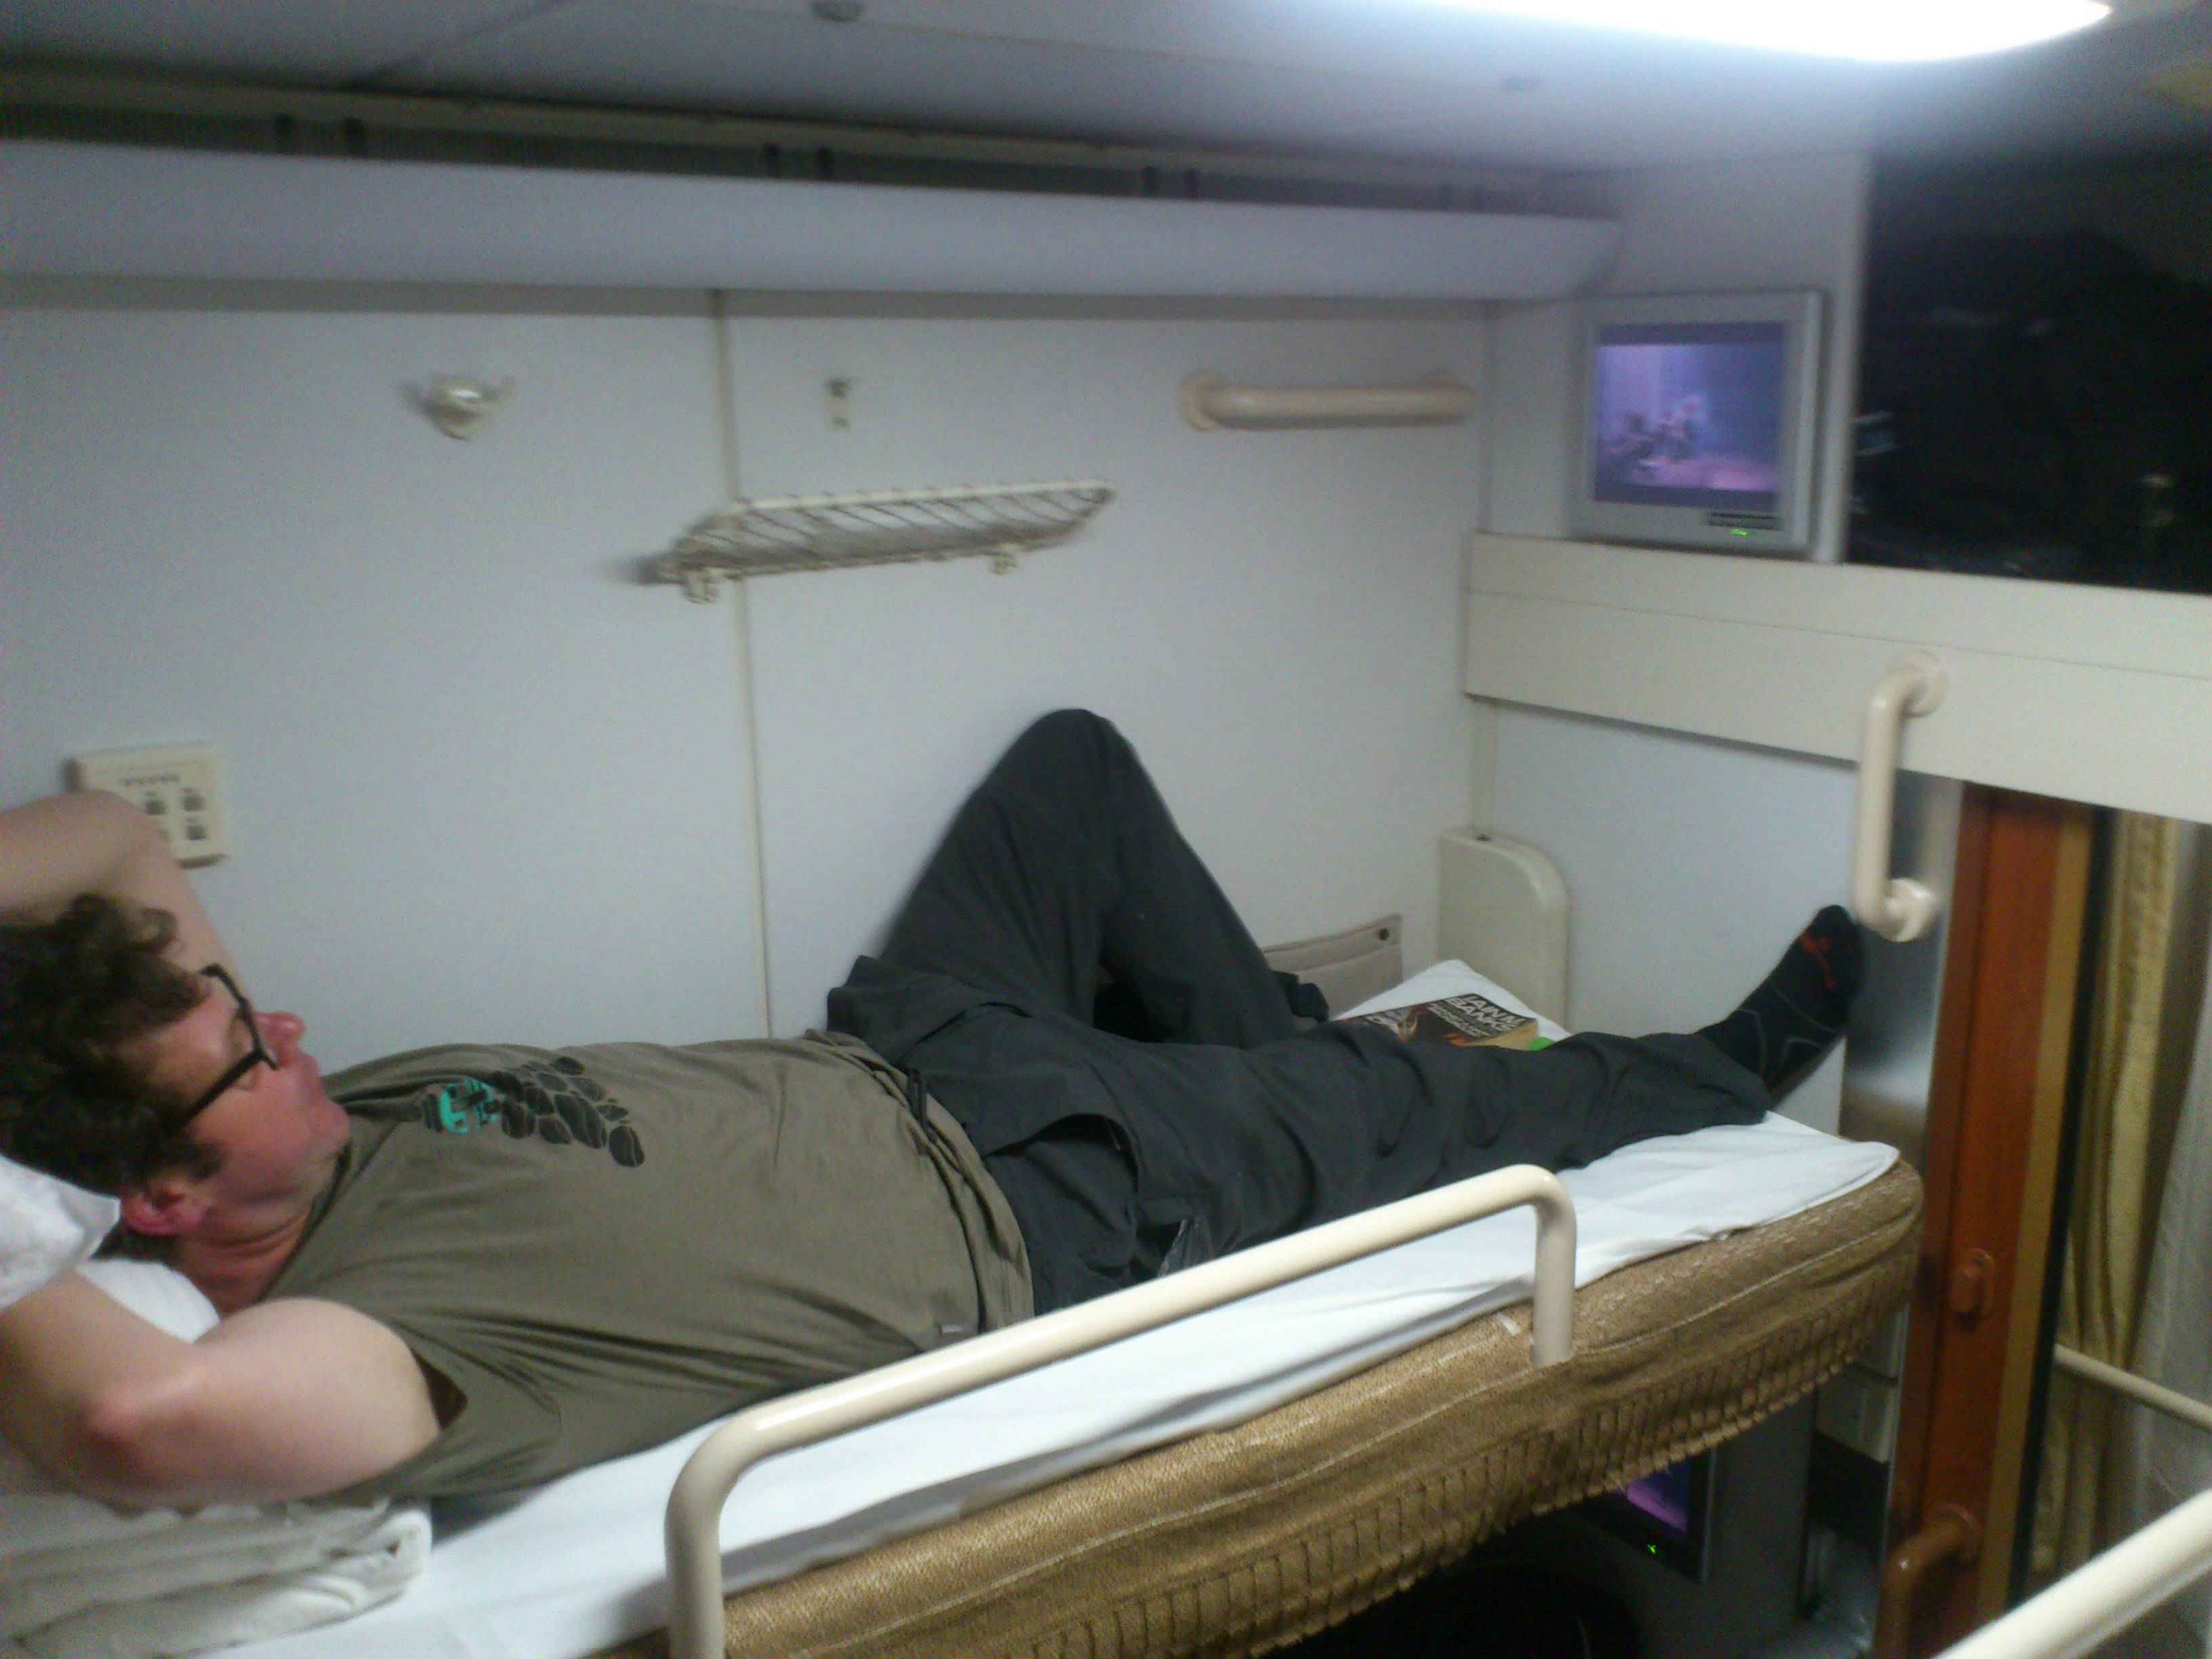 Soft Sleeper on the T99 Shanghai to Kowloon train